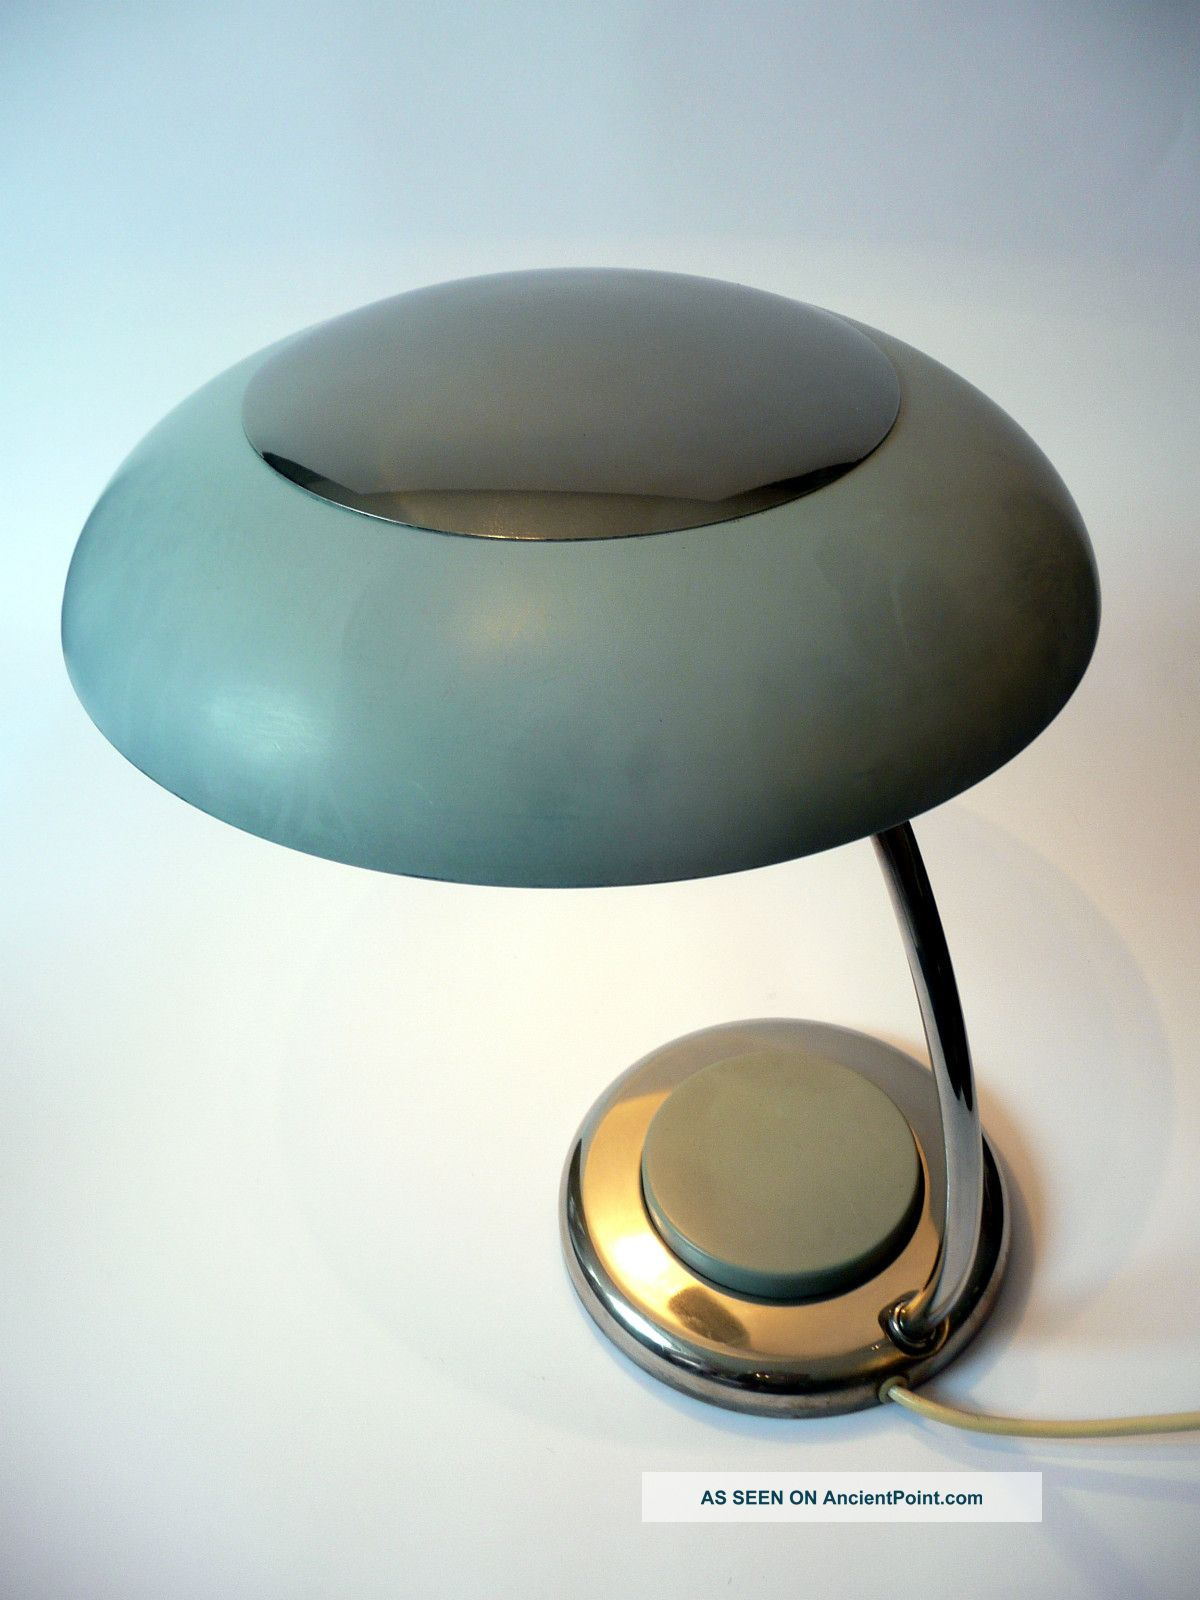 Vintage 1960s X Large Table / Desk Lamp Dutch Mid Century Danish Modern 50s 60s Mid-Century Modernism photo